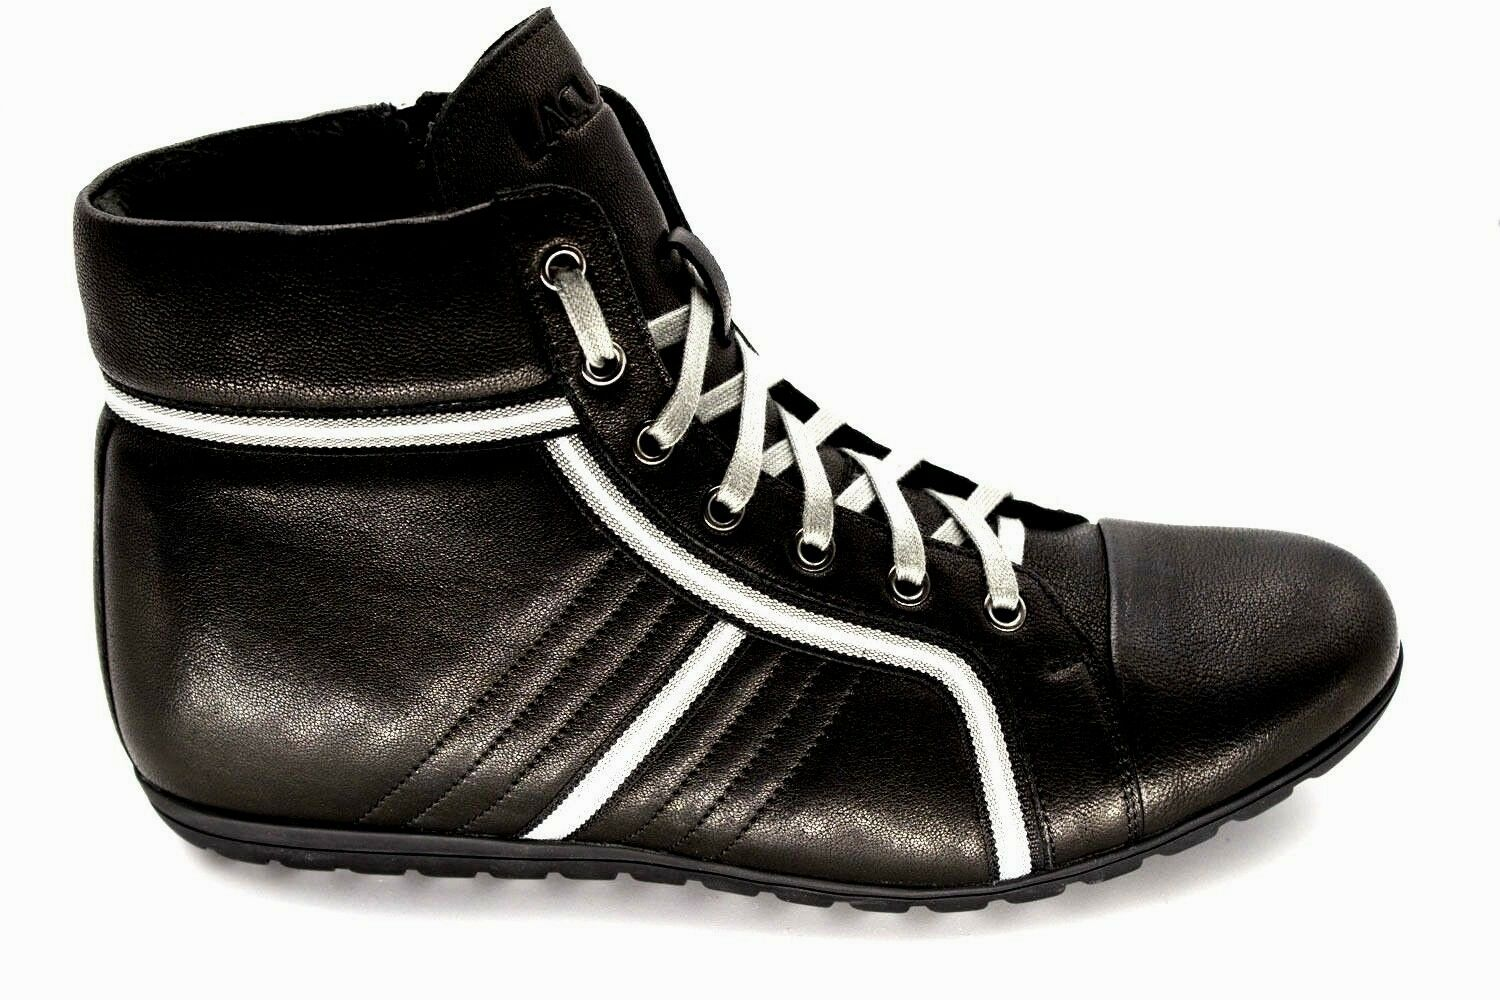 *33 UK 6 NEW BLACK REAL LEATHER HIGH TOP SNEAKERS BOXING SHOES TRAINERS EU 40